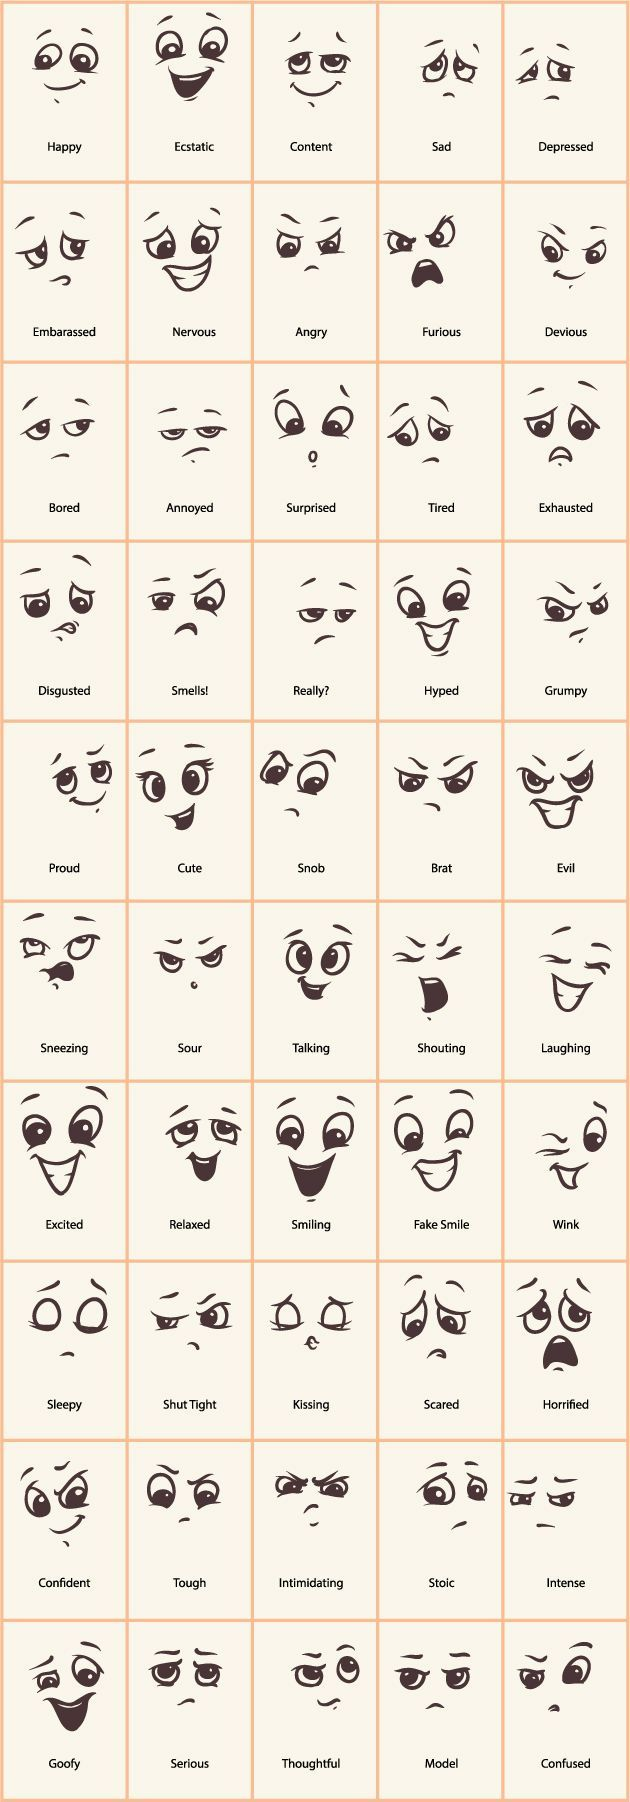 Hand drawn funny expressions vector icons - https://gooloc.com/hand-drawn-funny-expressions-vector-icons/?utm_source=PN&utm_medium=gooloc77%40gmail.com&utm_campaign=SNAP%2Bfrom%2BGooLoc